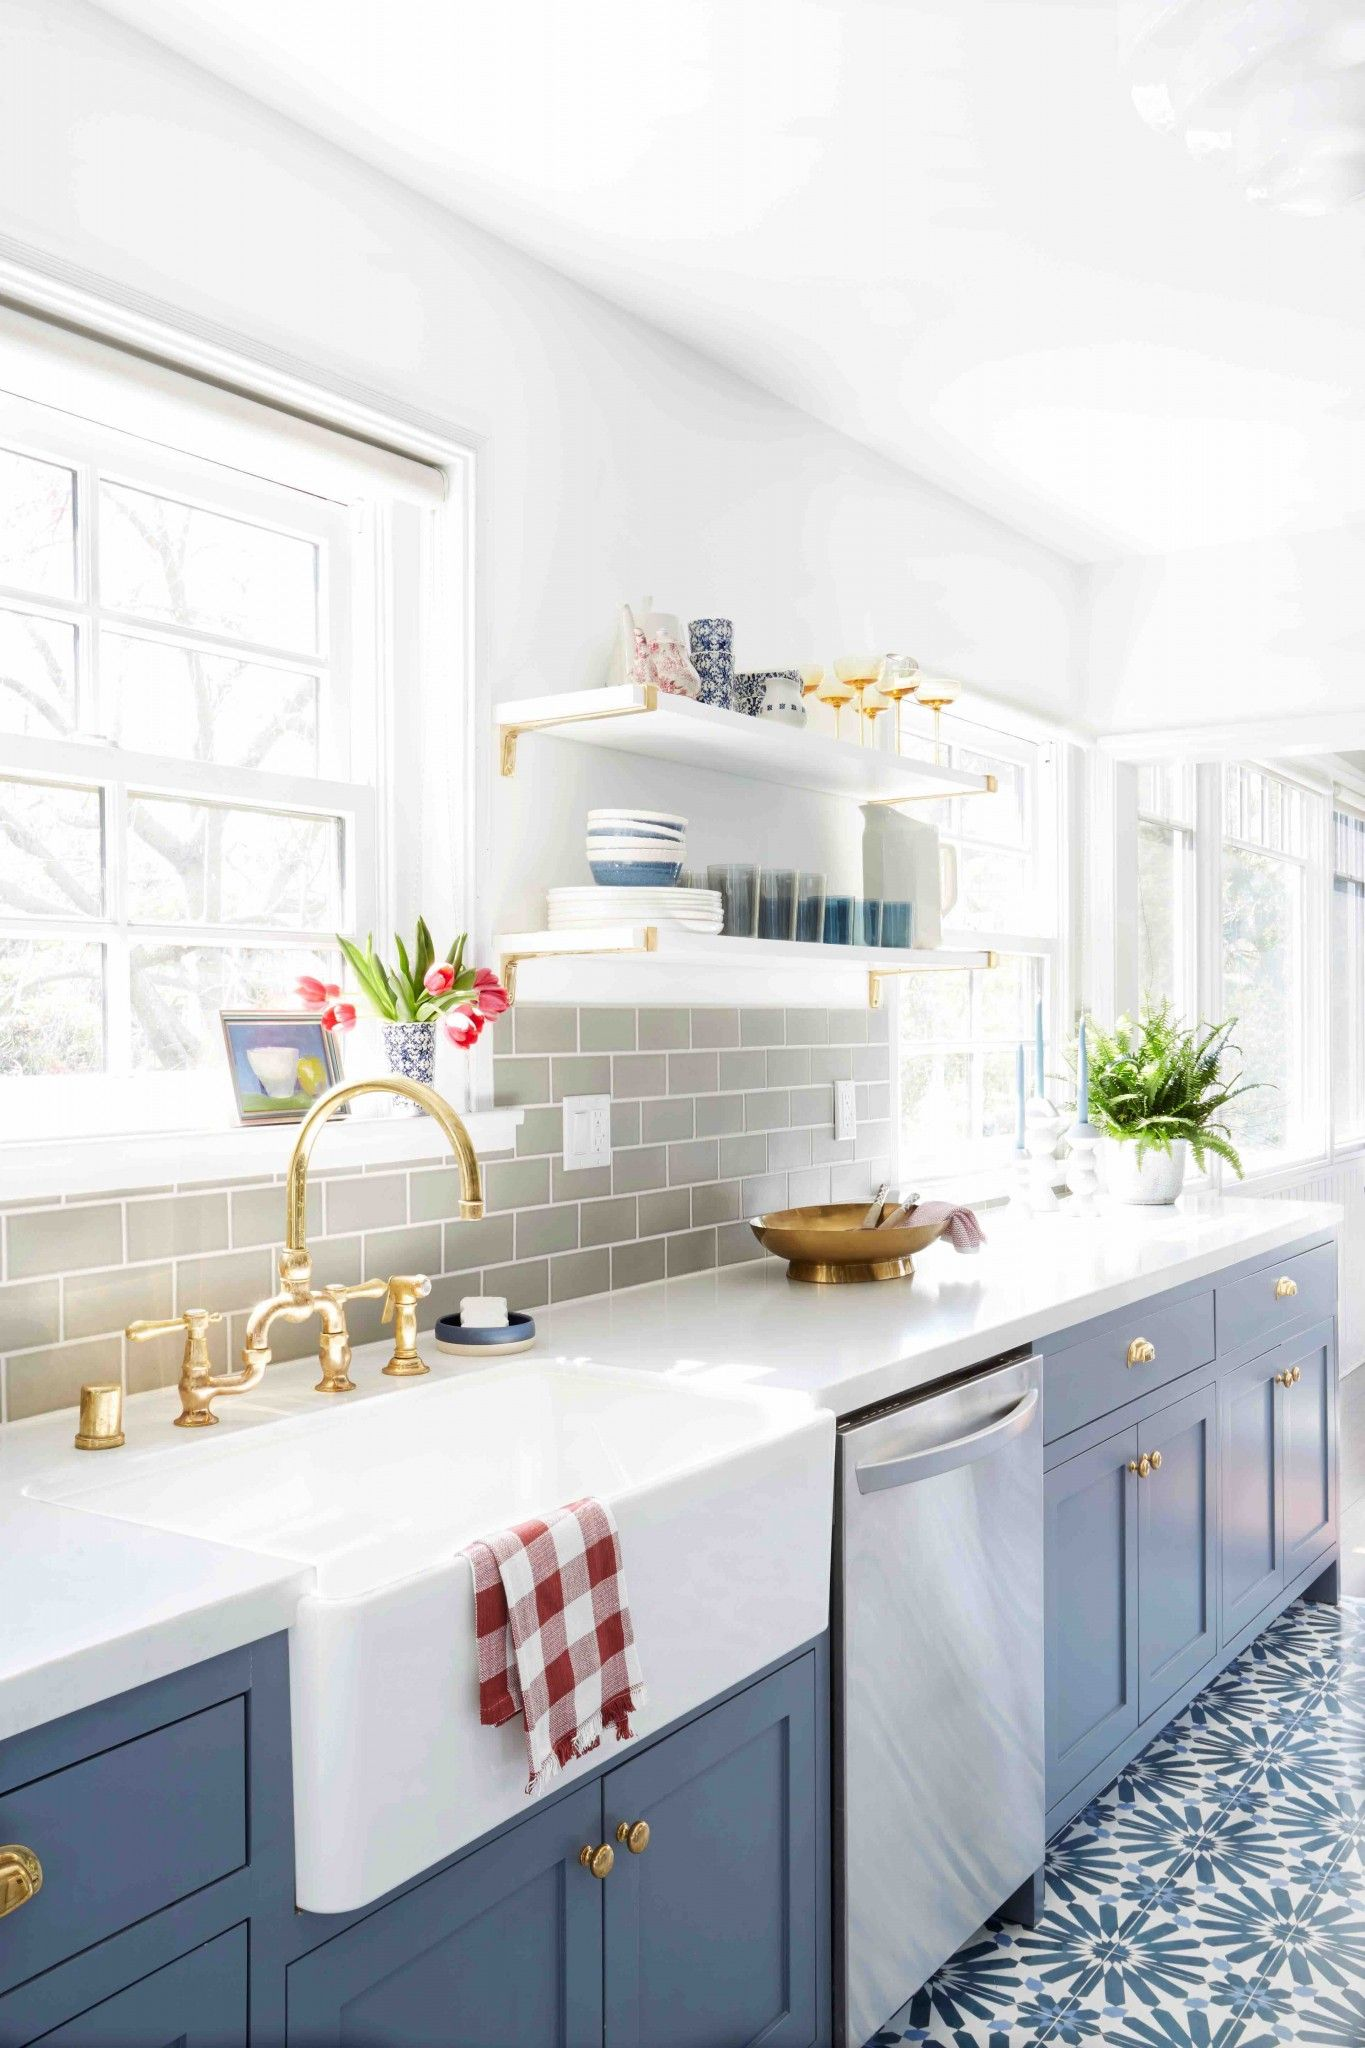 Kitchen Crush: All Shades of Blue signed Style by Emily Henderson #kitchencrushes